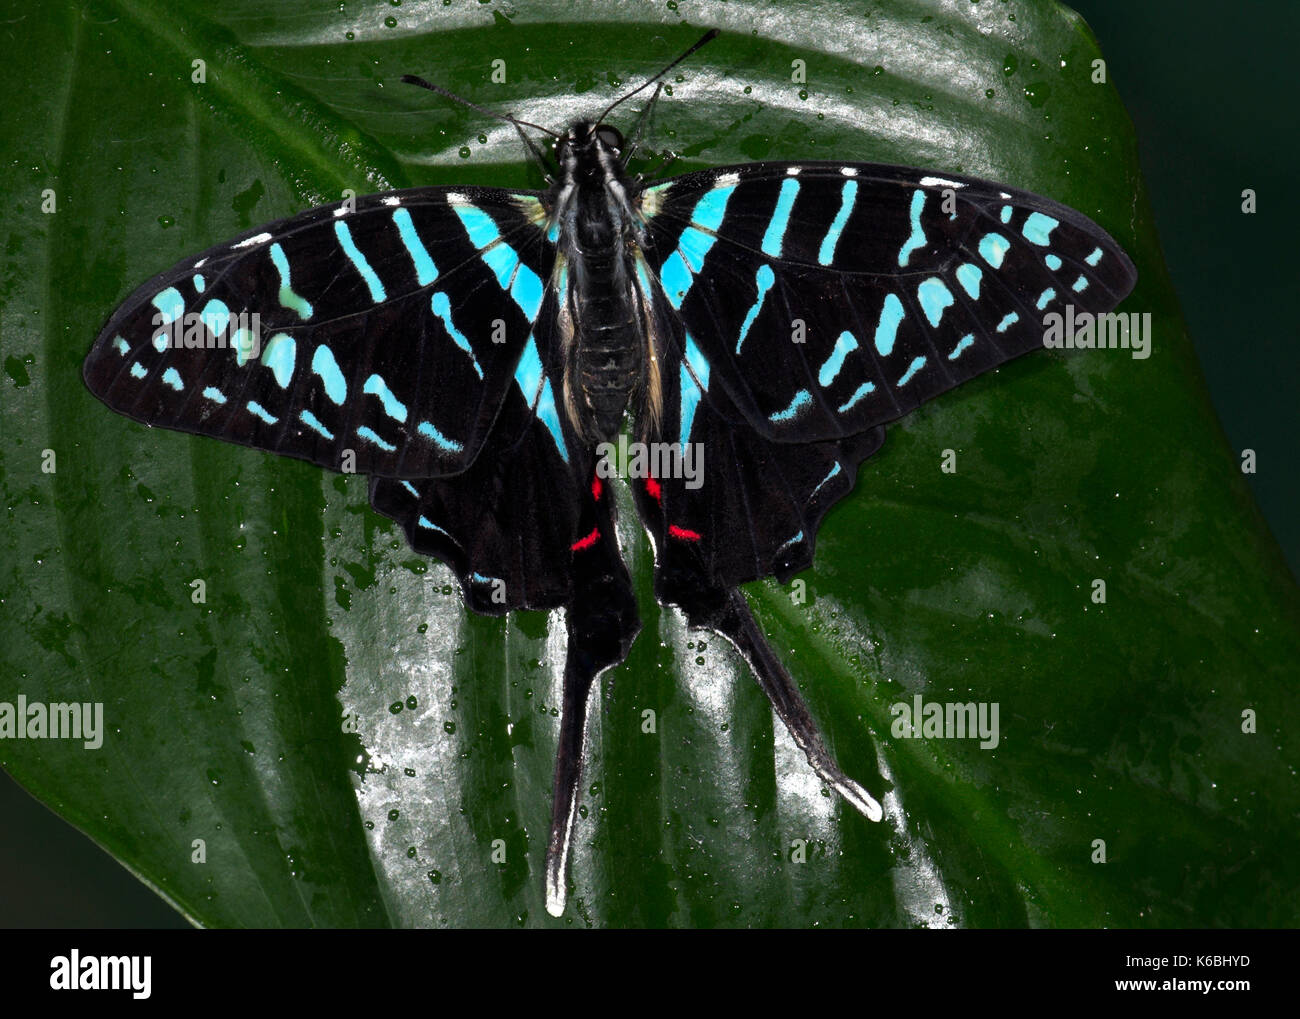 Sưu tập Bộ cánh vẩy 2 - Page 57 Graphium-colonna-butterfly-black-and-blue-swordtail-long-tail-on-leaf-K6BHYD